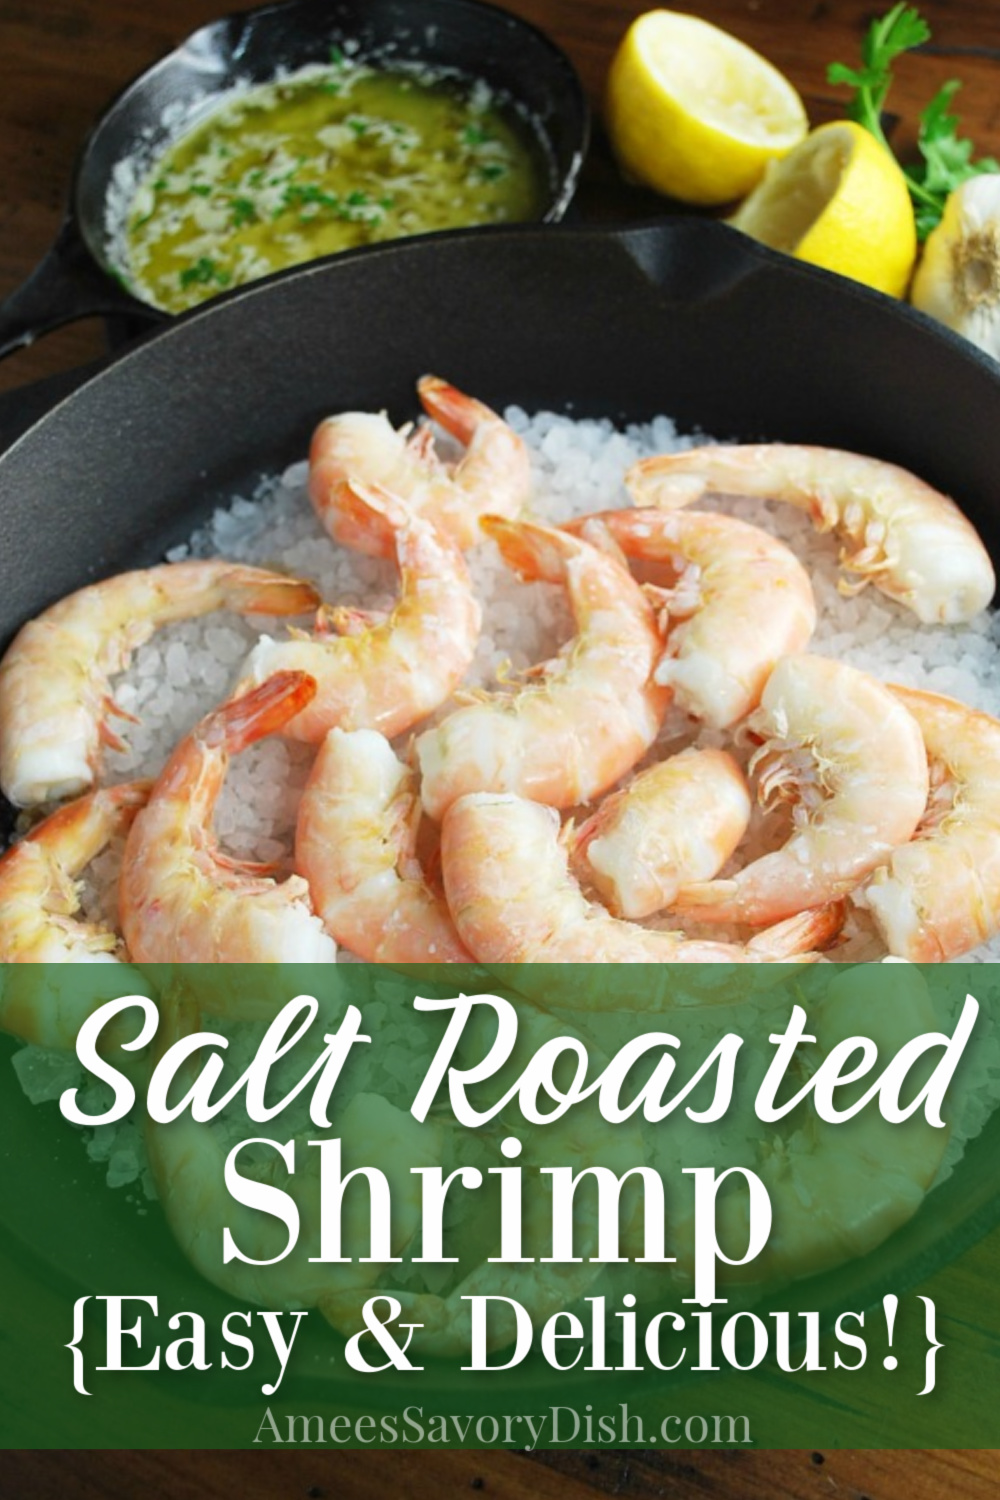 A simple and delicious method for making salt roasted shrimp by cooking shell-on shrimp in a hot salted cast-iron skillet served with a flavorful lemon garlic butter sauce. #shrimp #shrimprecipe via @Ameessavorydish